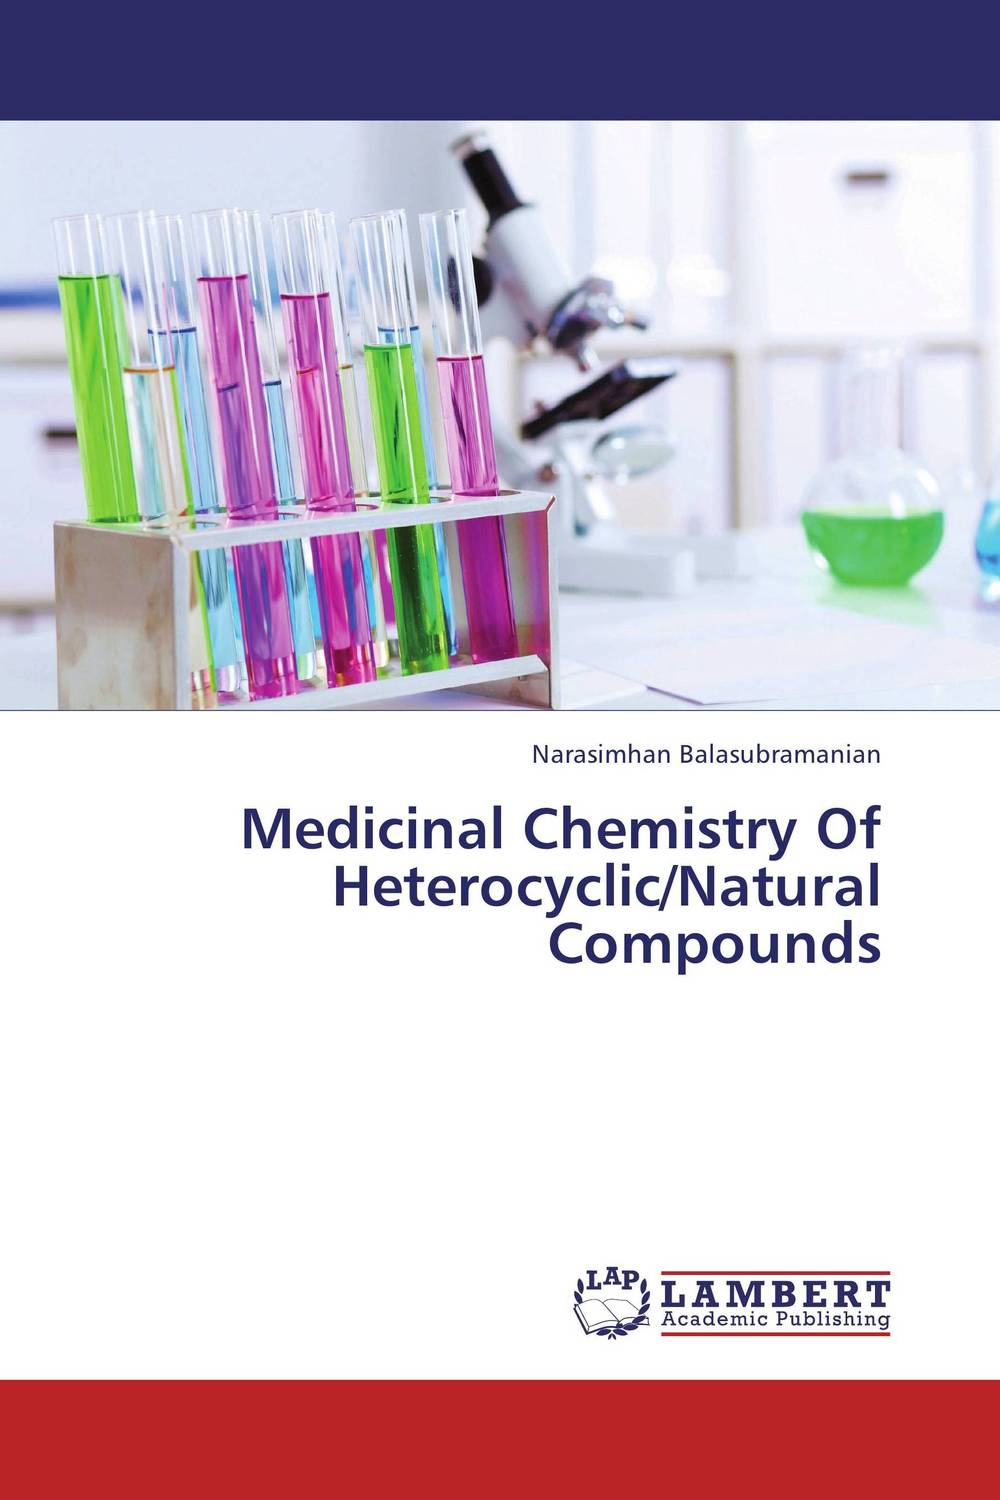 Medicinal Chemistry Of Heterocyclic/Natural Compounds medicinal chemistry of heterocyclic natural compounds